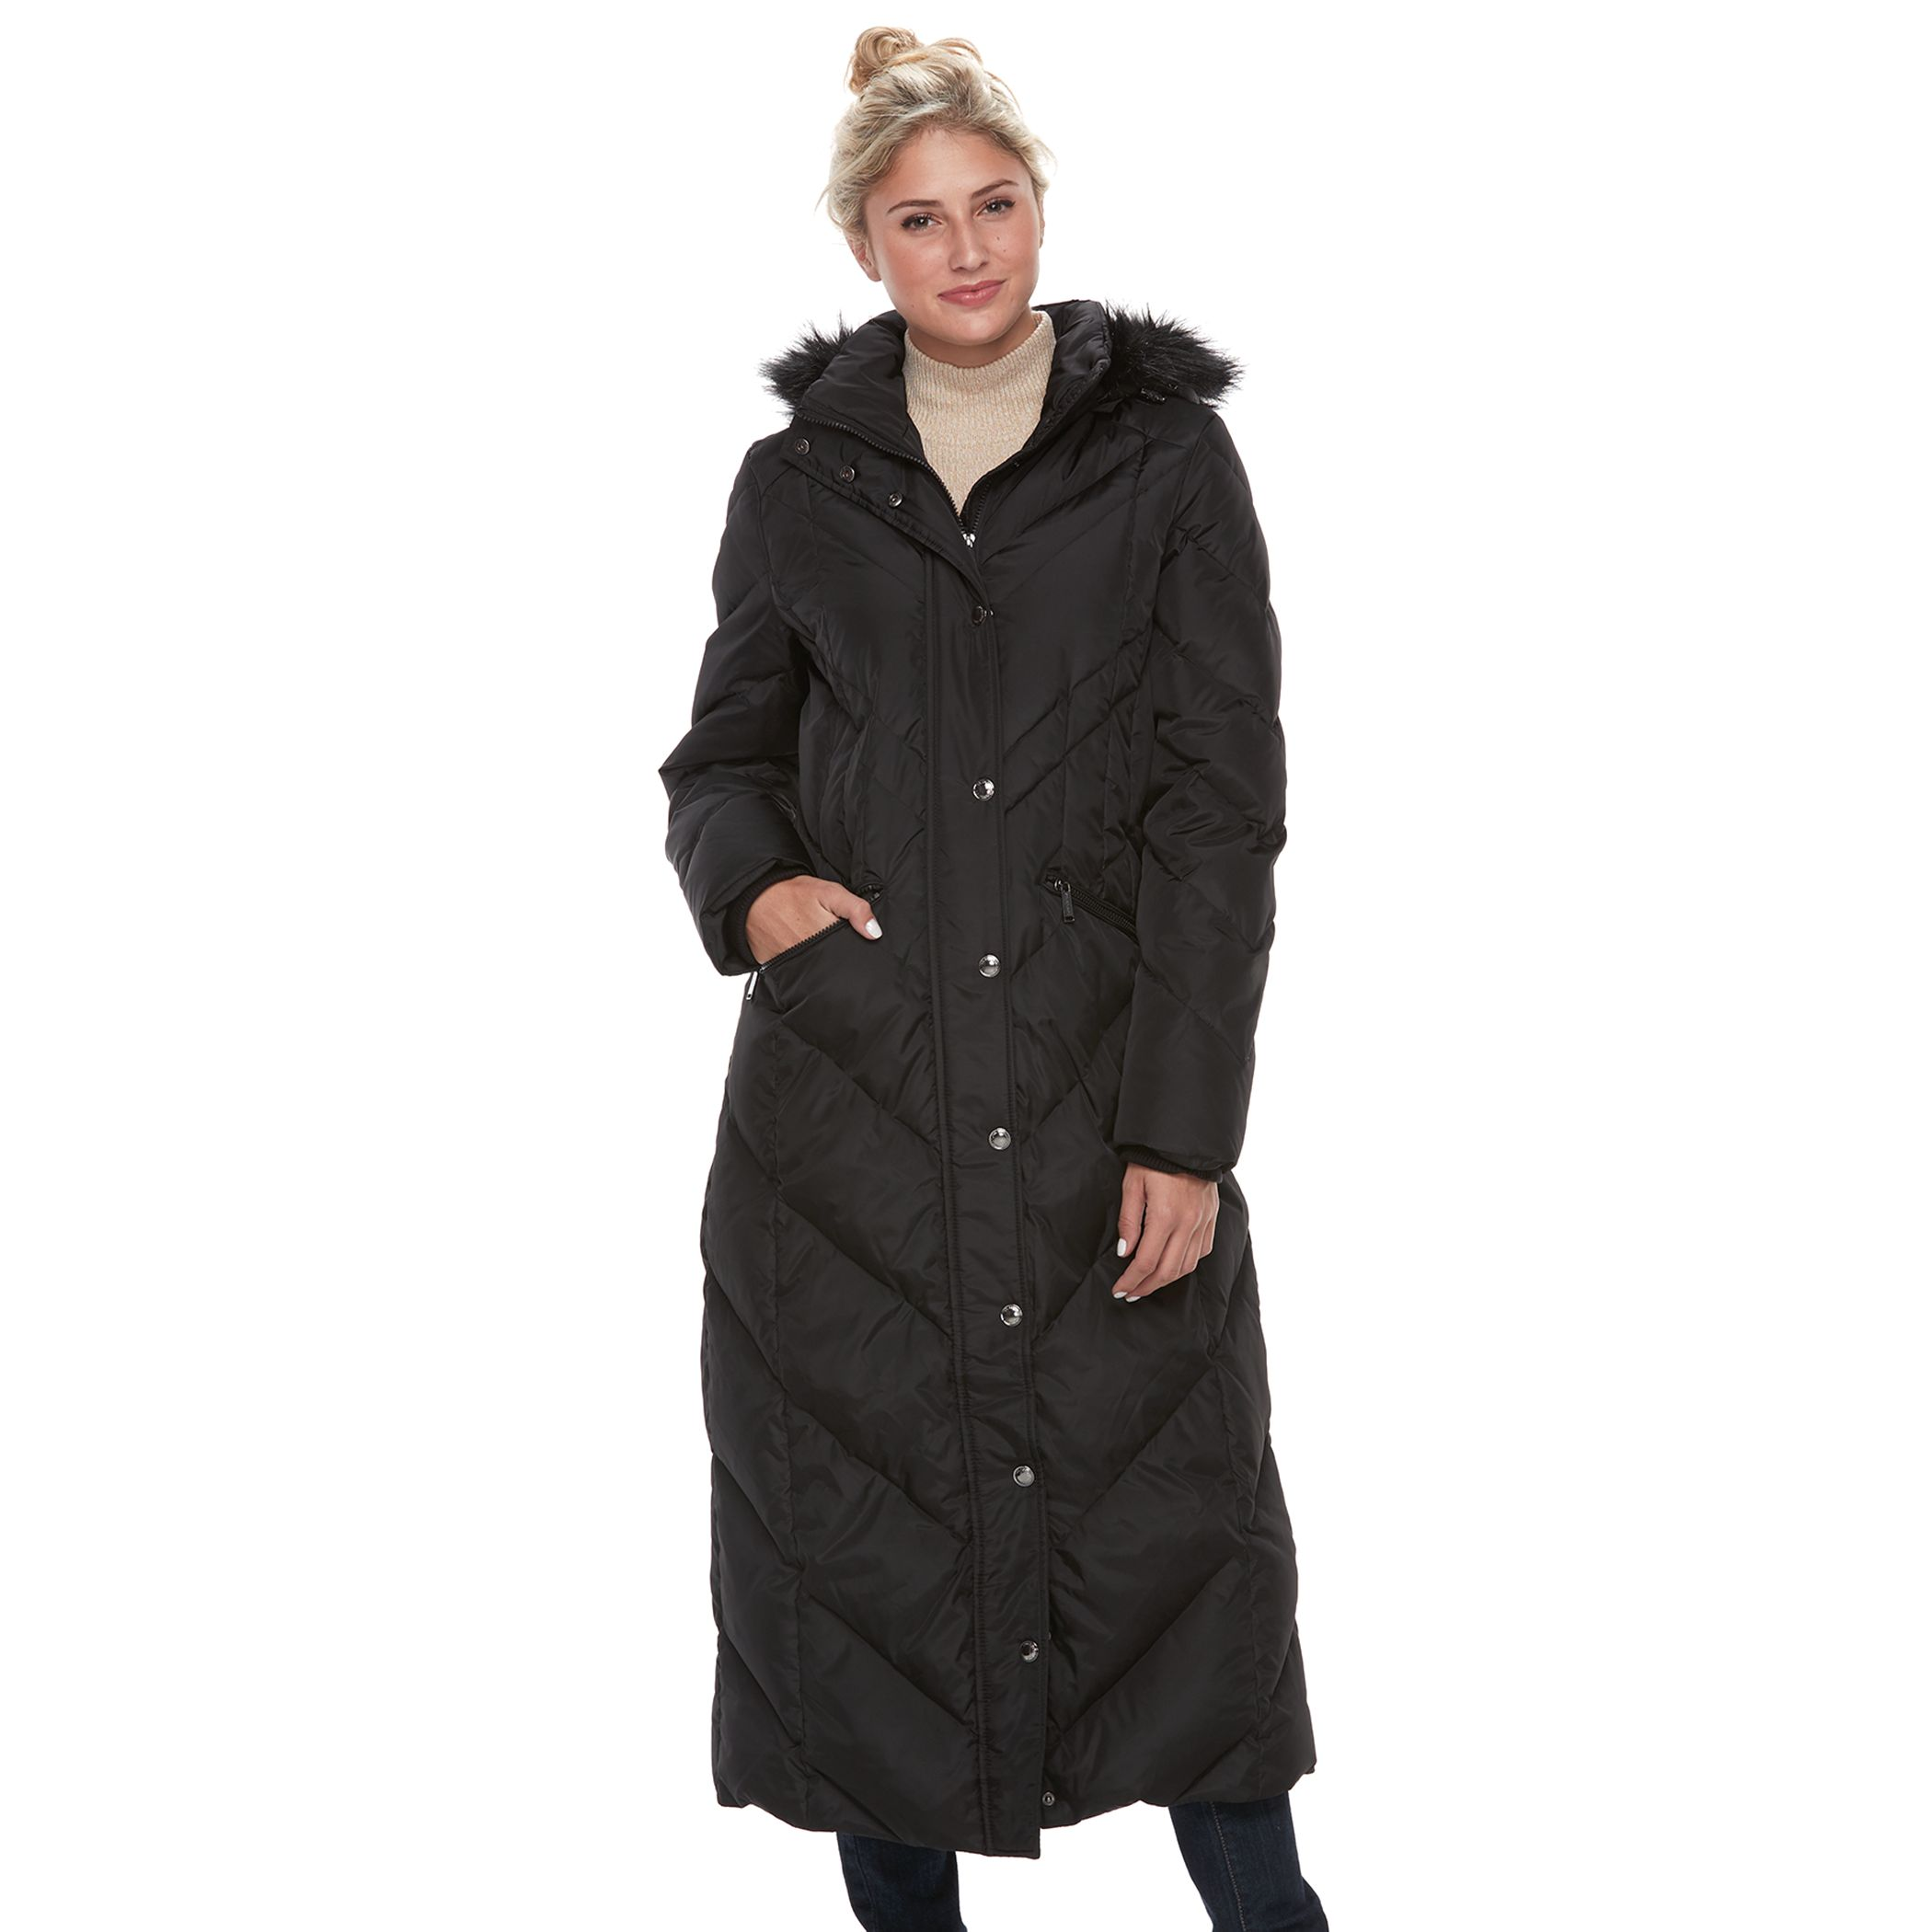 Womens black puffer jacket with fur hood